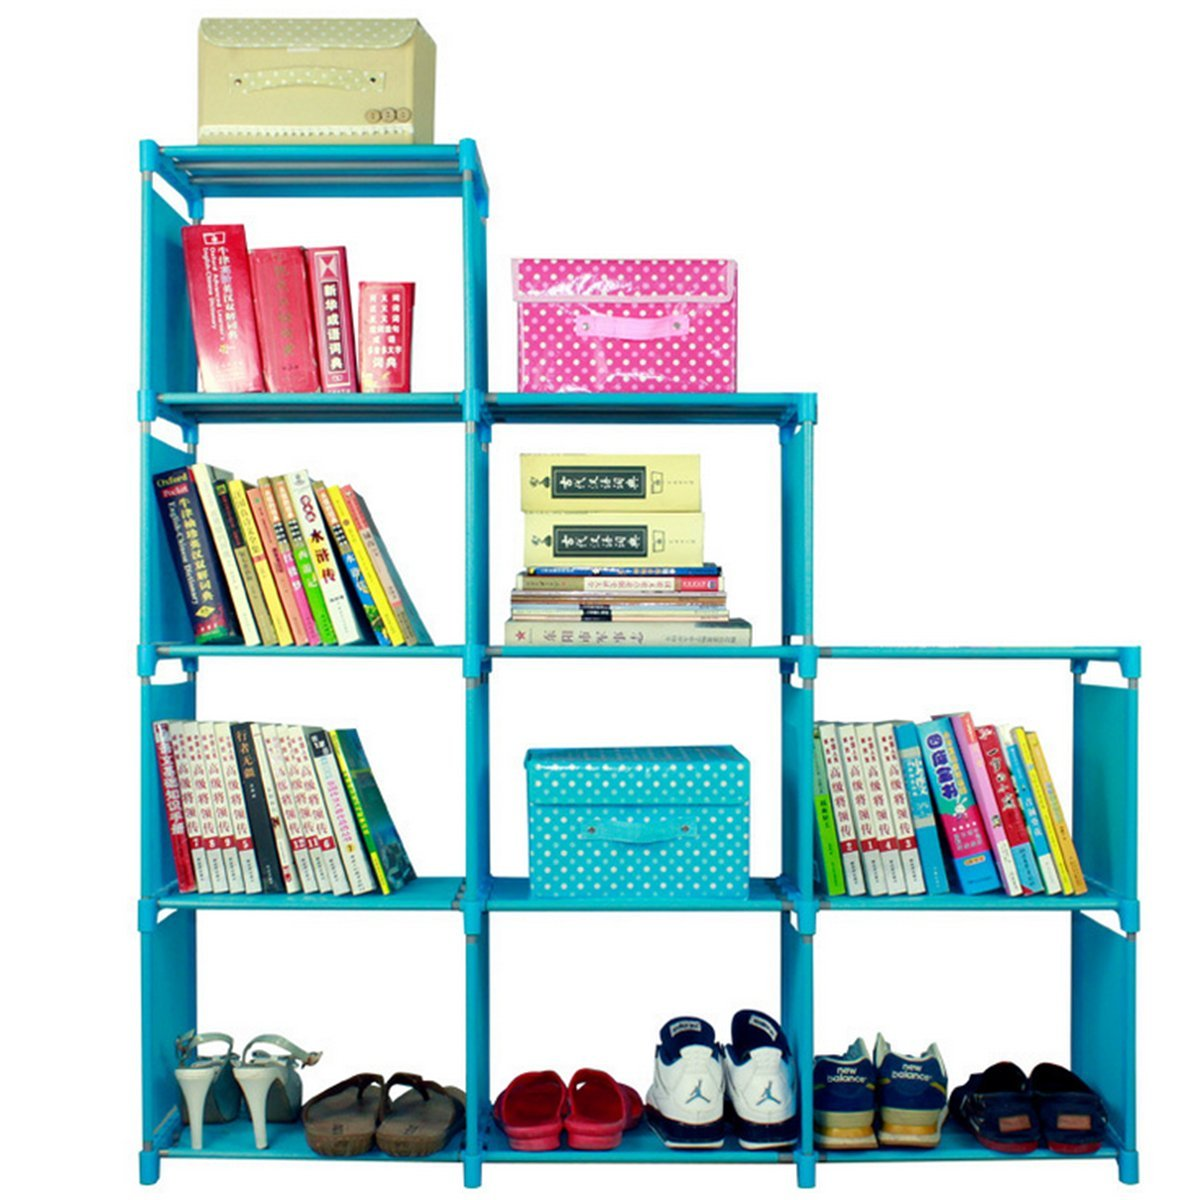 4-Tier DIY Storage Cube Closet Organizer Shelf, 9-cube Cabinet ...